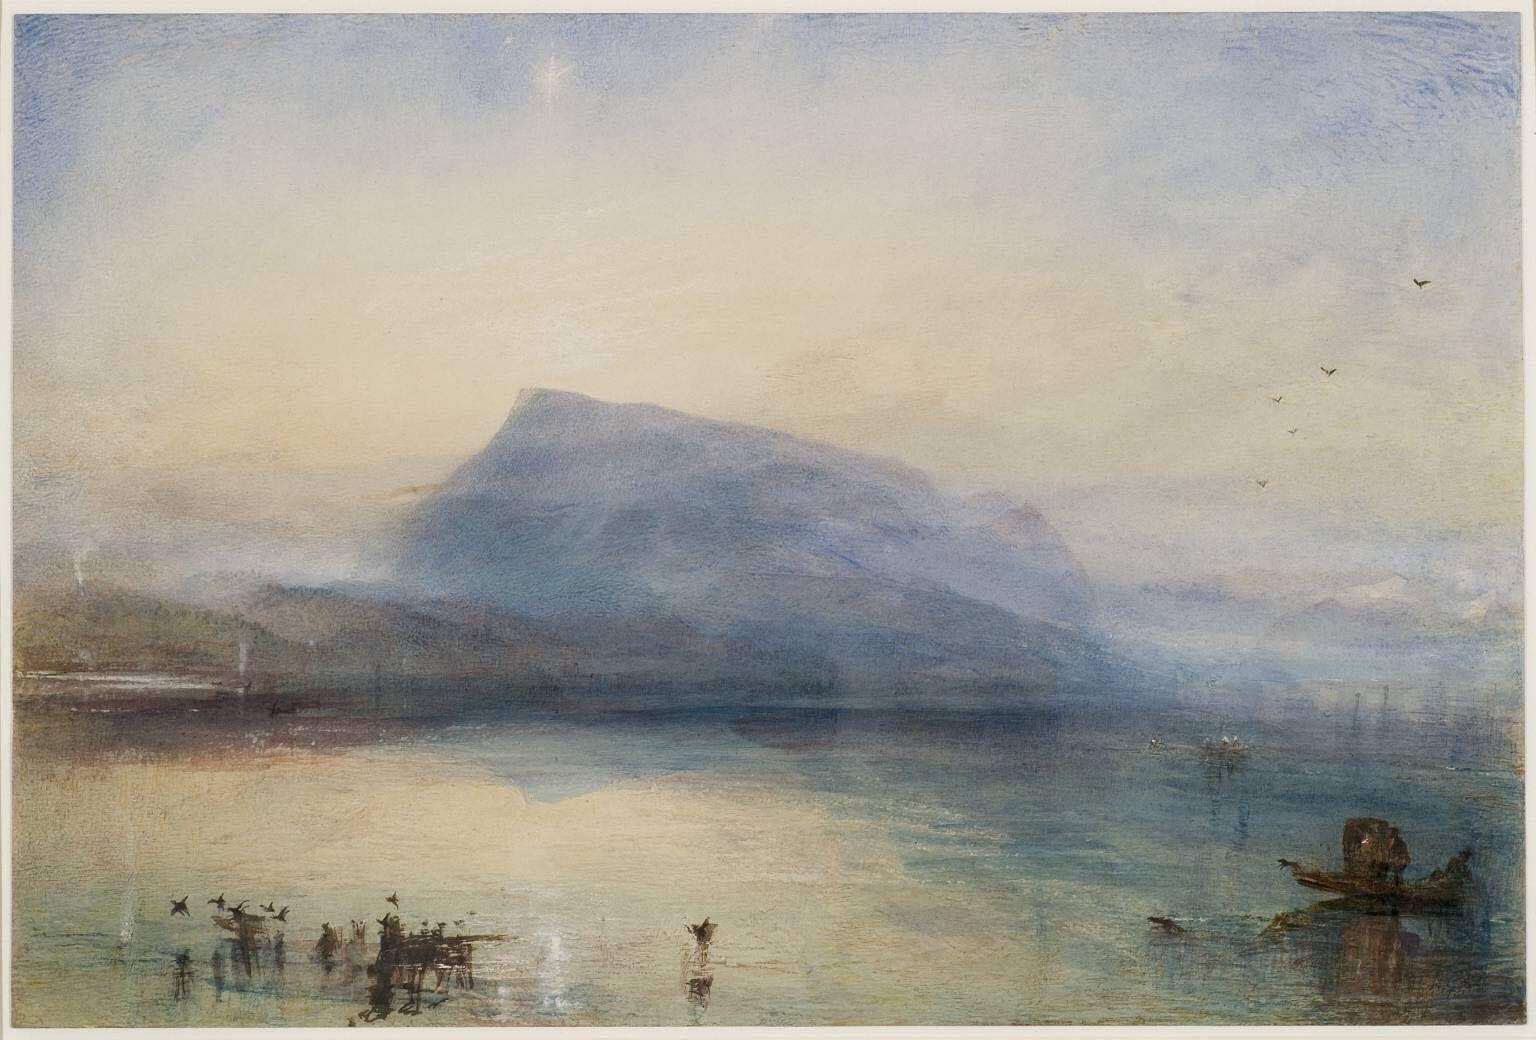 William Turner, The blue Rigi, Sunrise - 1842 (oeuvre et détails)